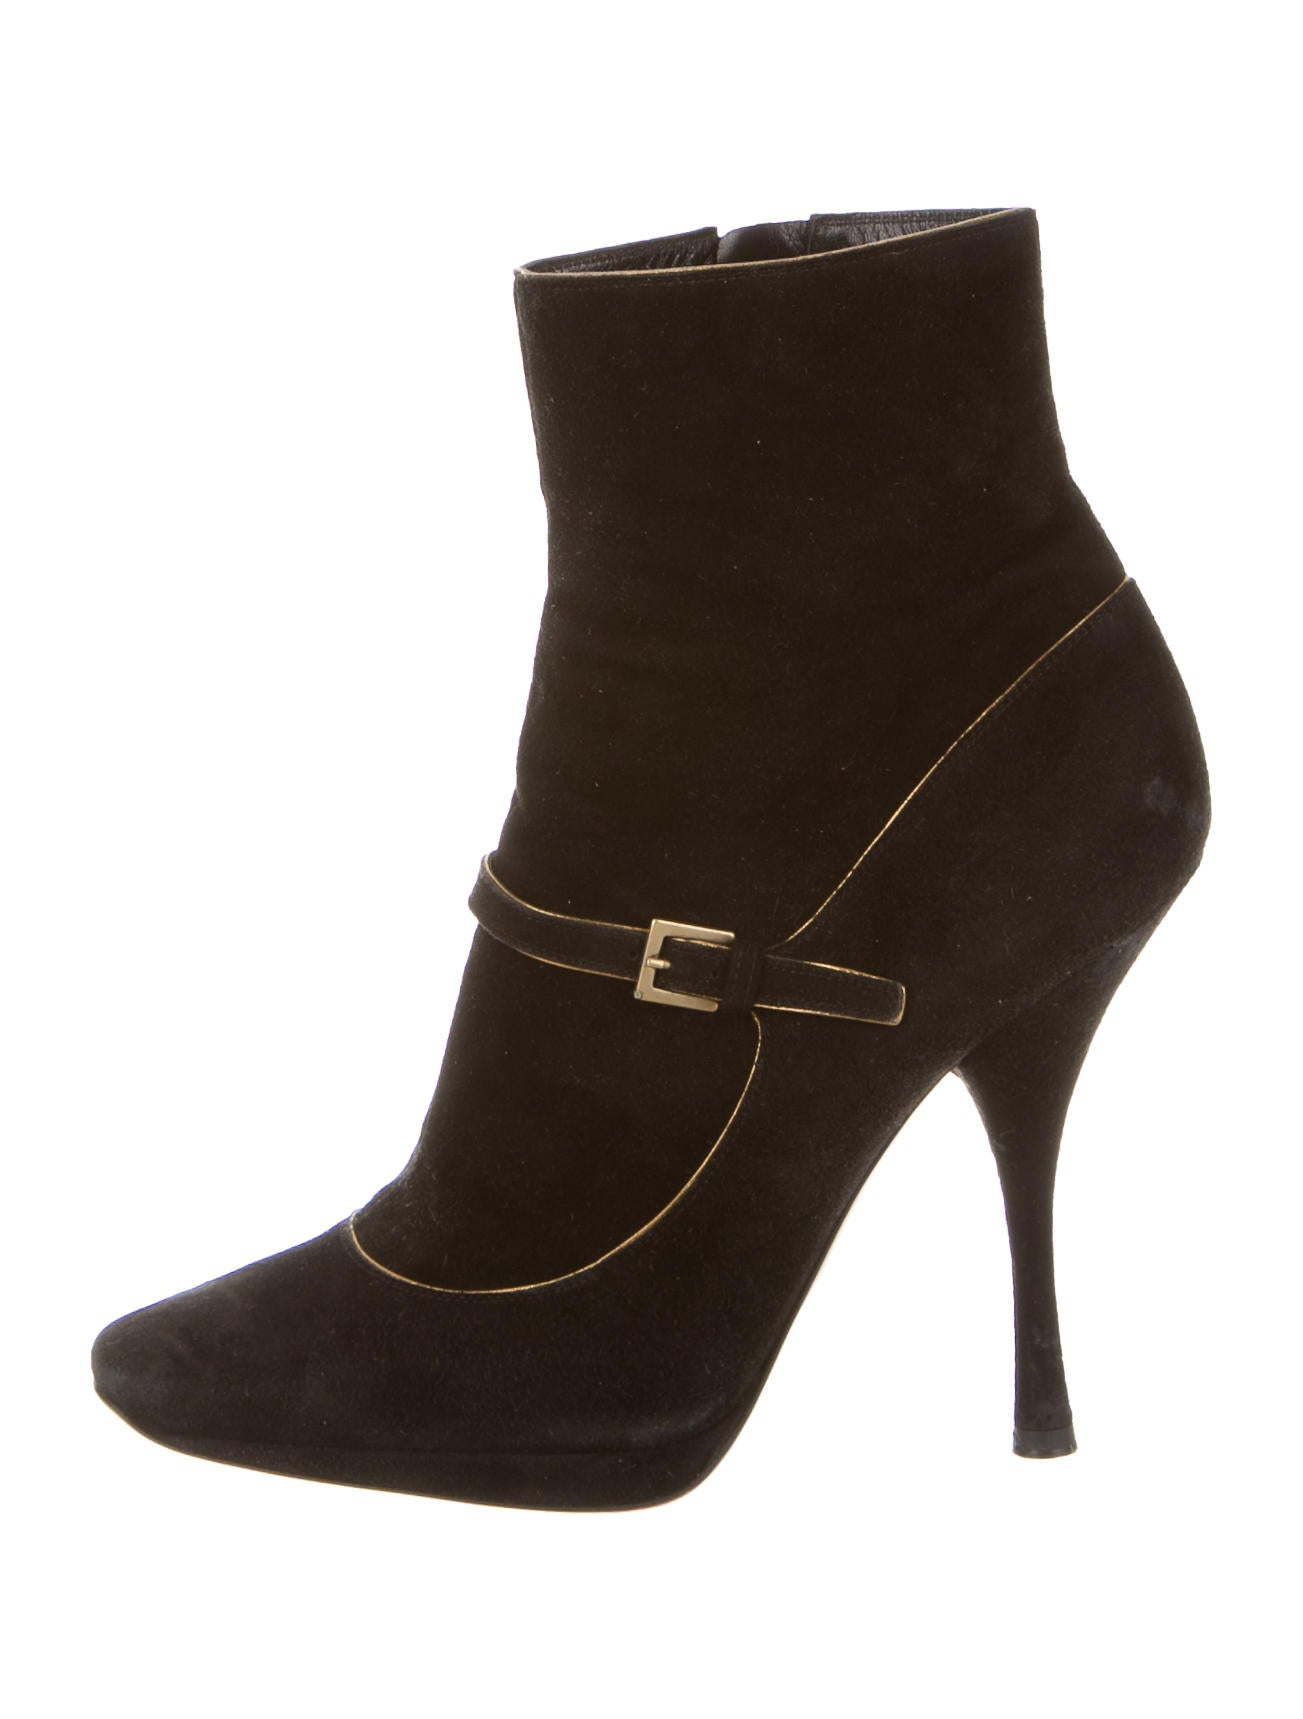 louis vuitton suede toe ankle boots shoes